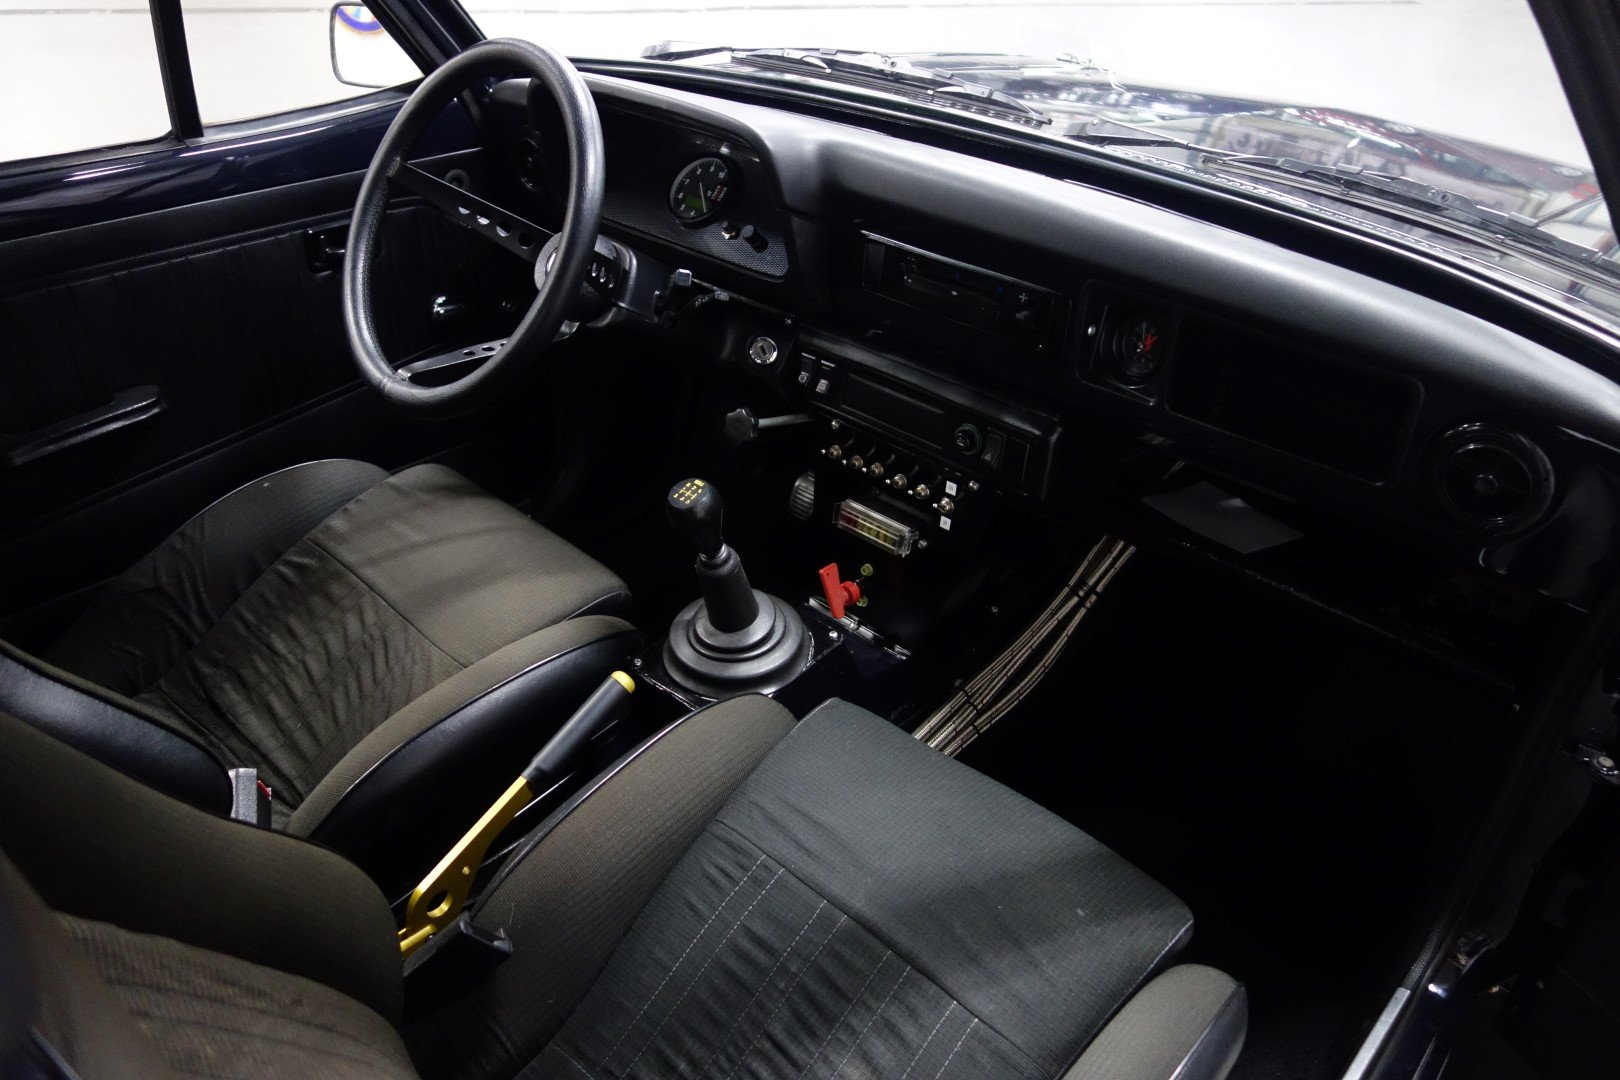 1978 Ford Escort Mk2 RS 1800 BDA For Sale (picture 5 of 6)